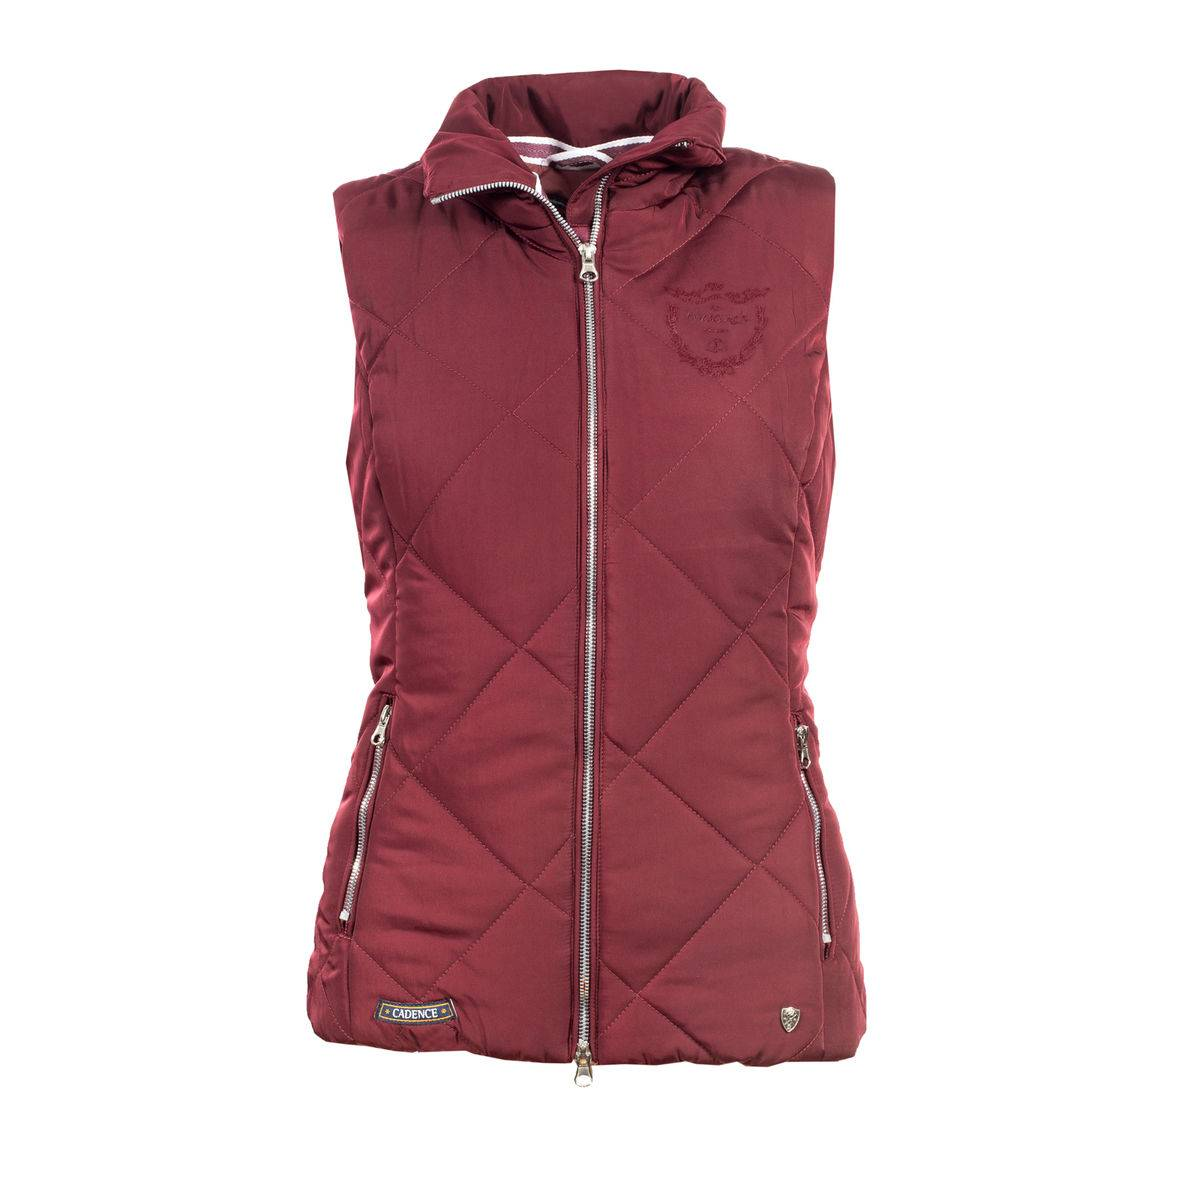 Horze Crescendo Christina Padded Vest - Ladies